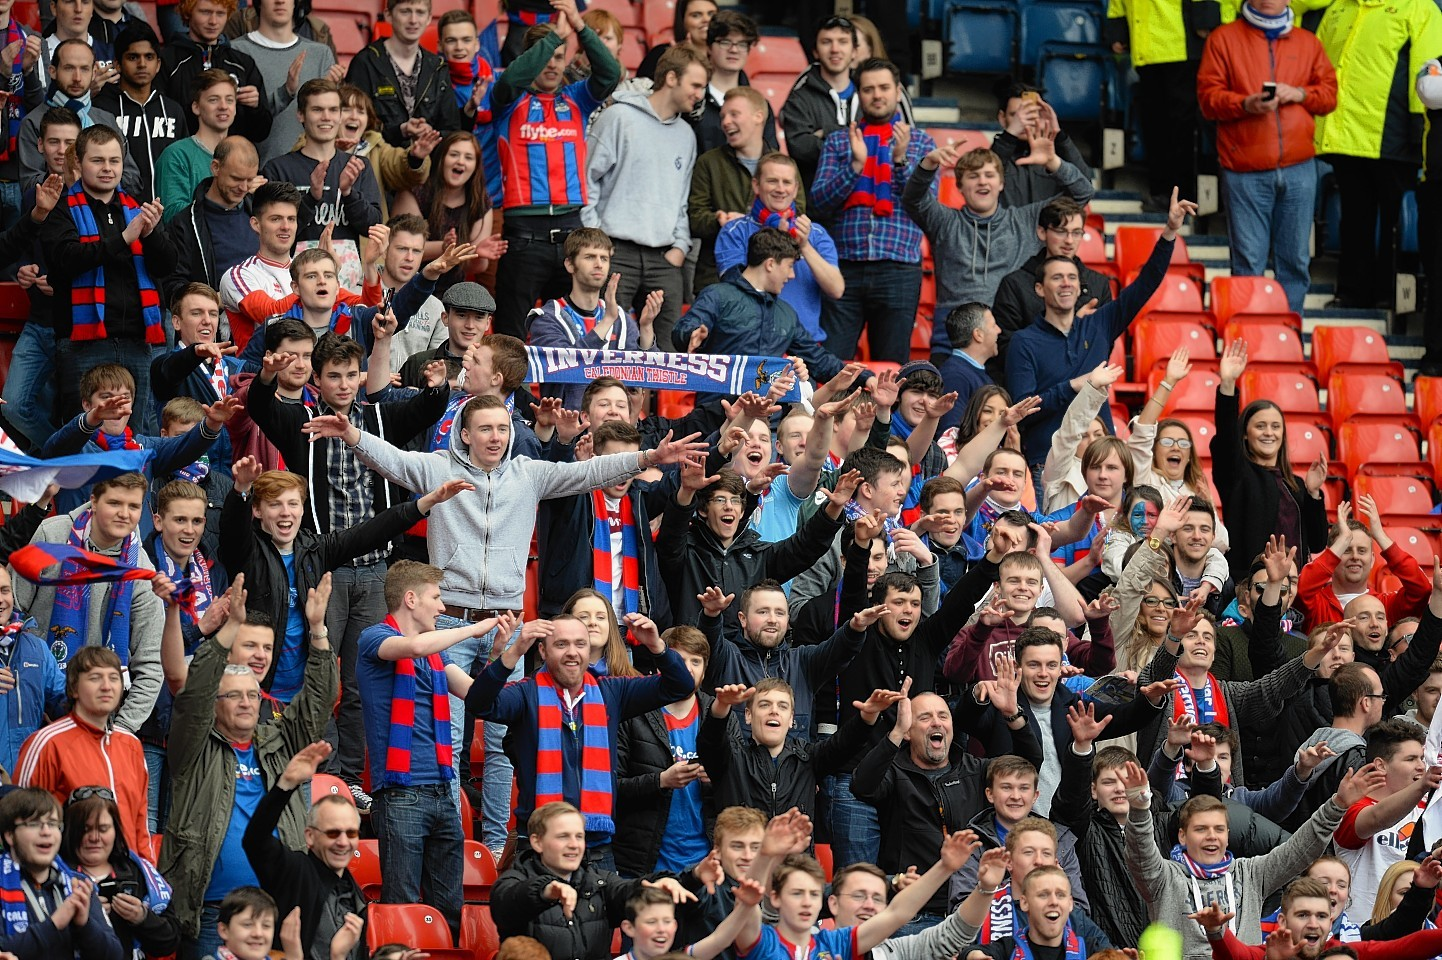 The Inverness supporters travelled in good numbers